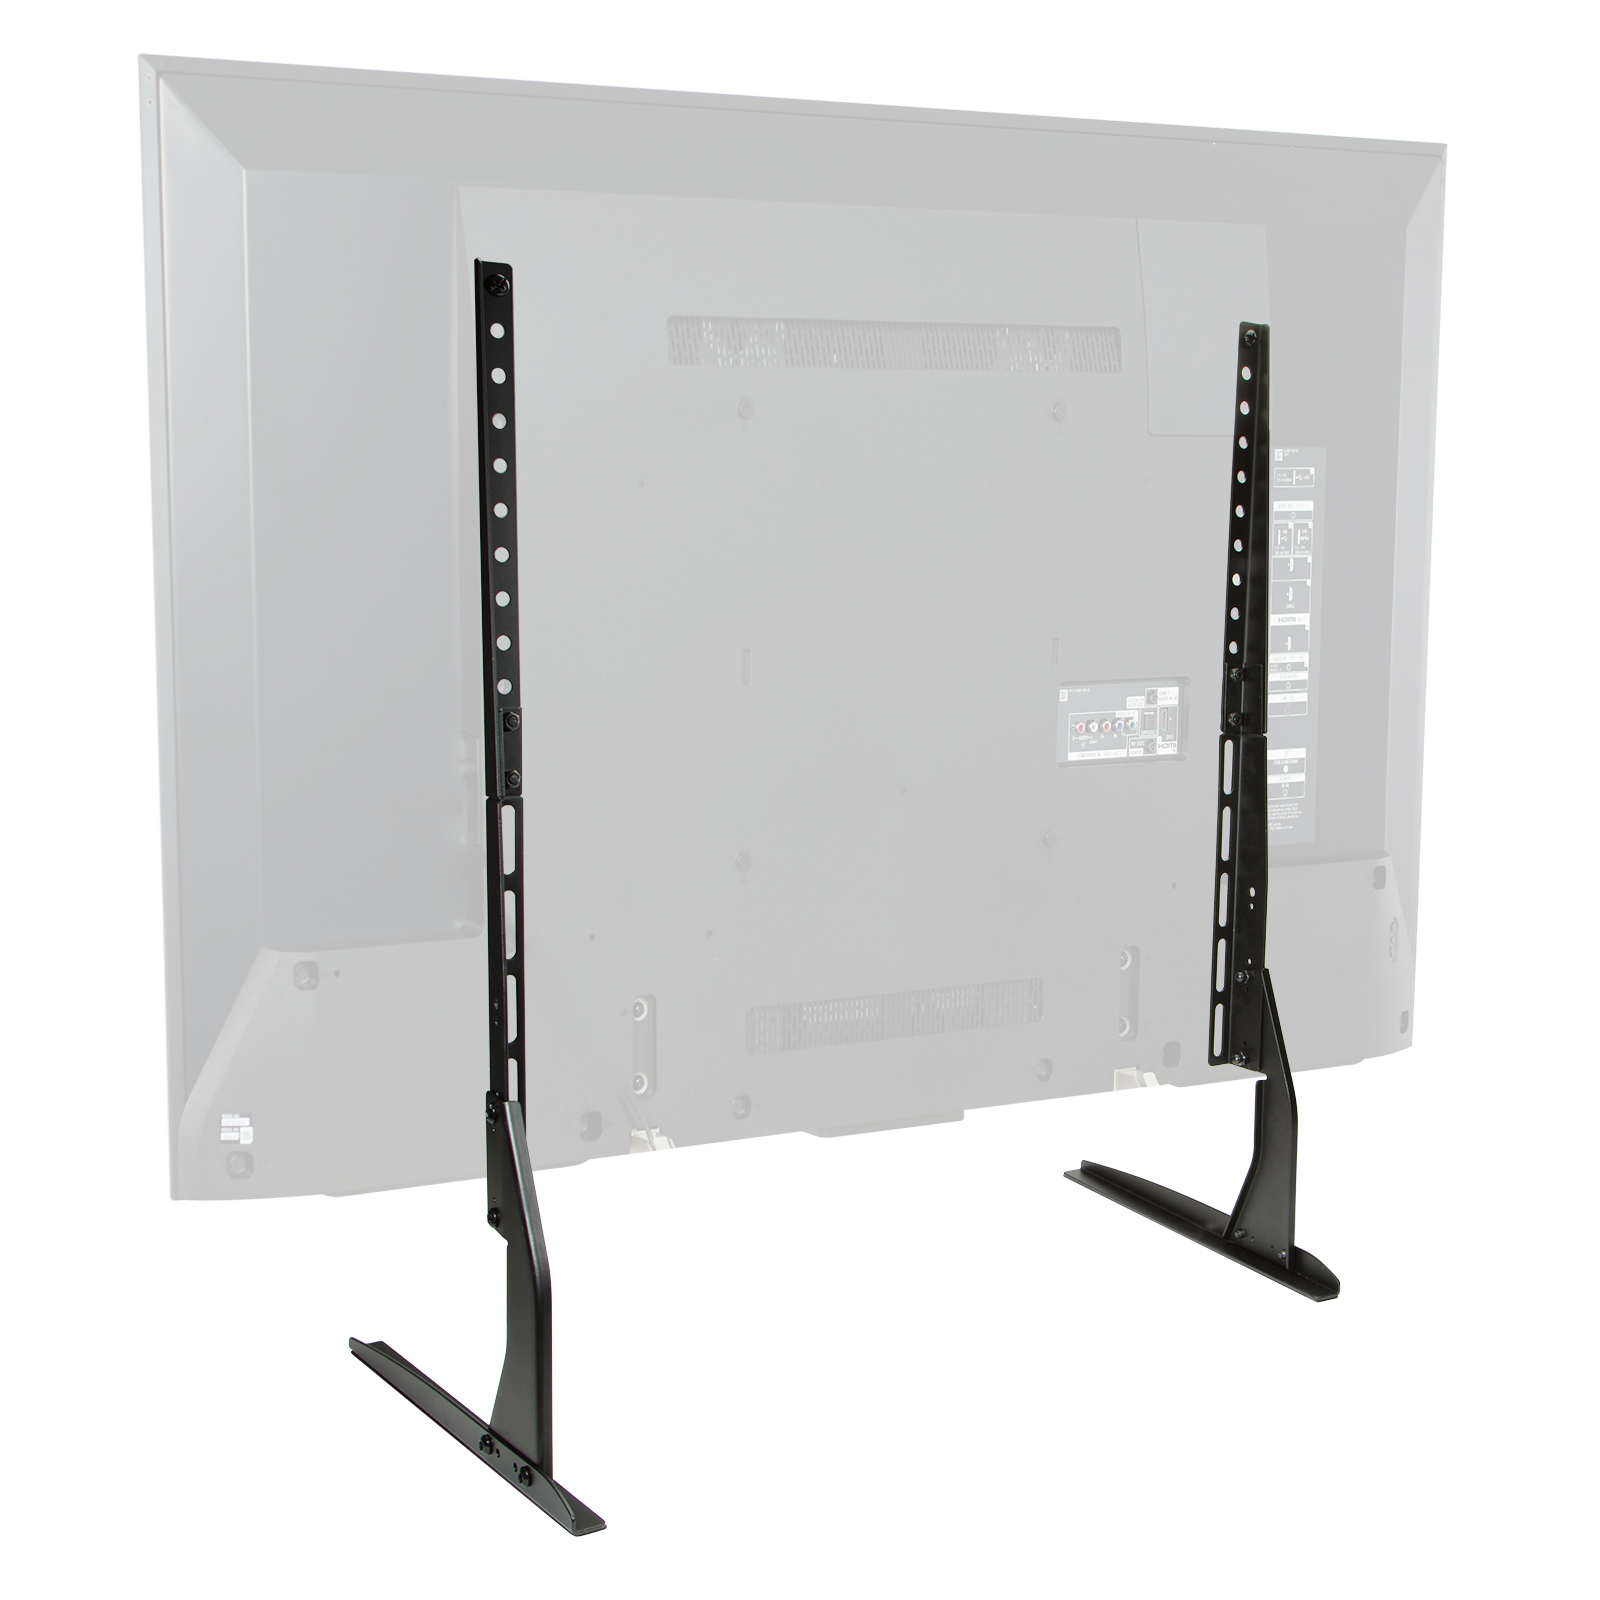 Mount Factory Modern Tabletop TV Stand - Universal Flat Screen